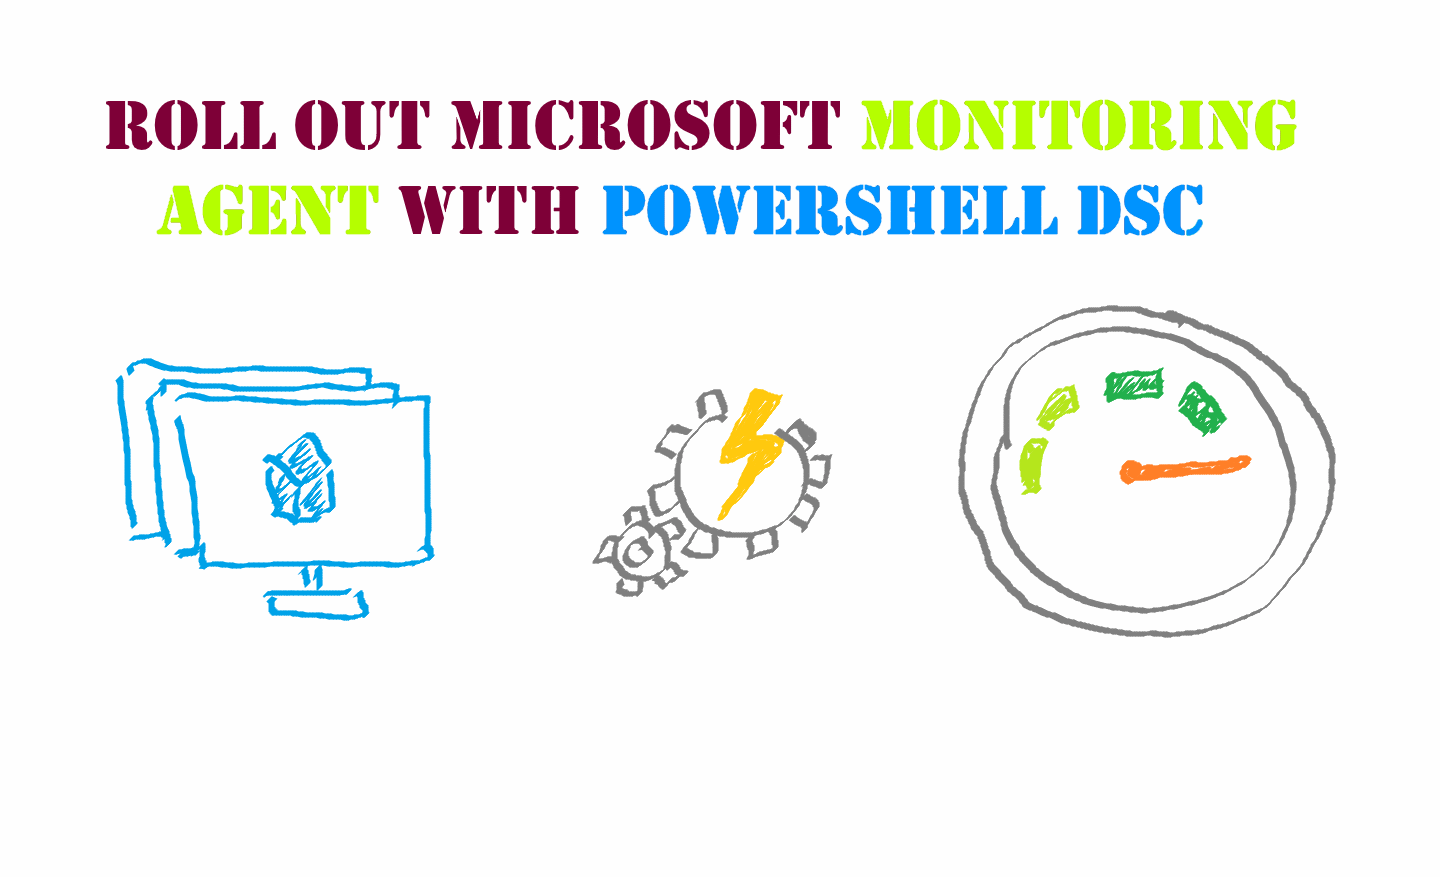 How to roll out Microsoft Monitoring Agent with PowerShell DSC